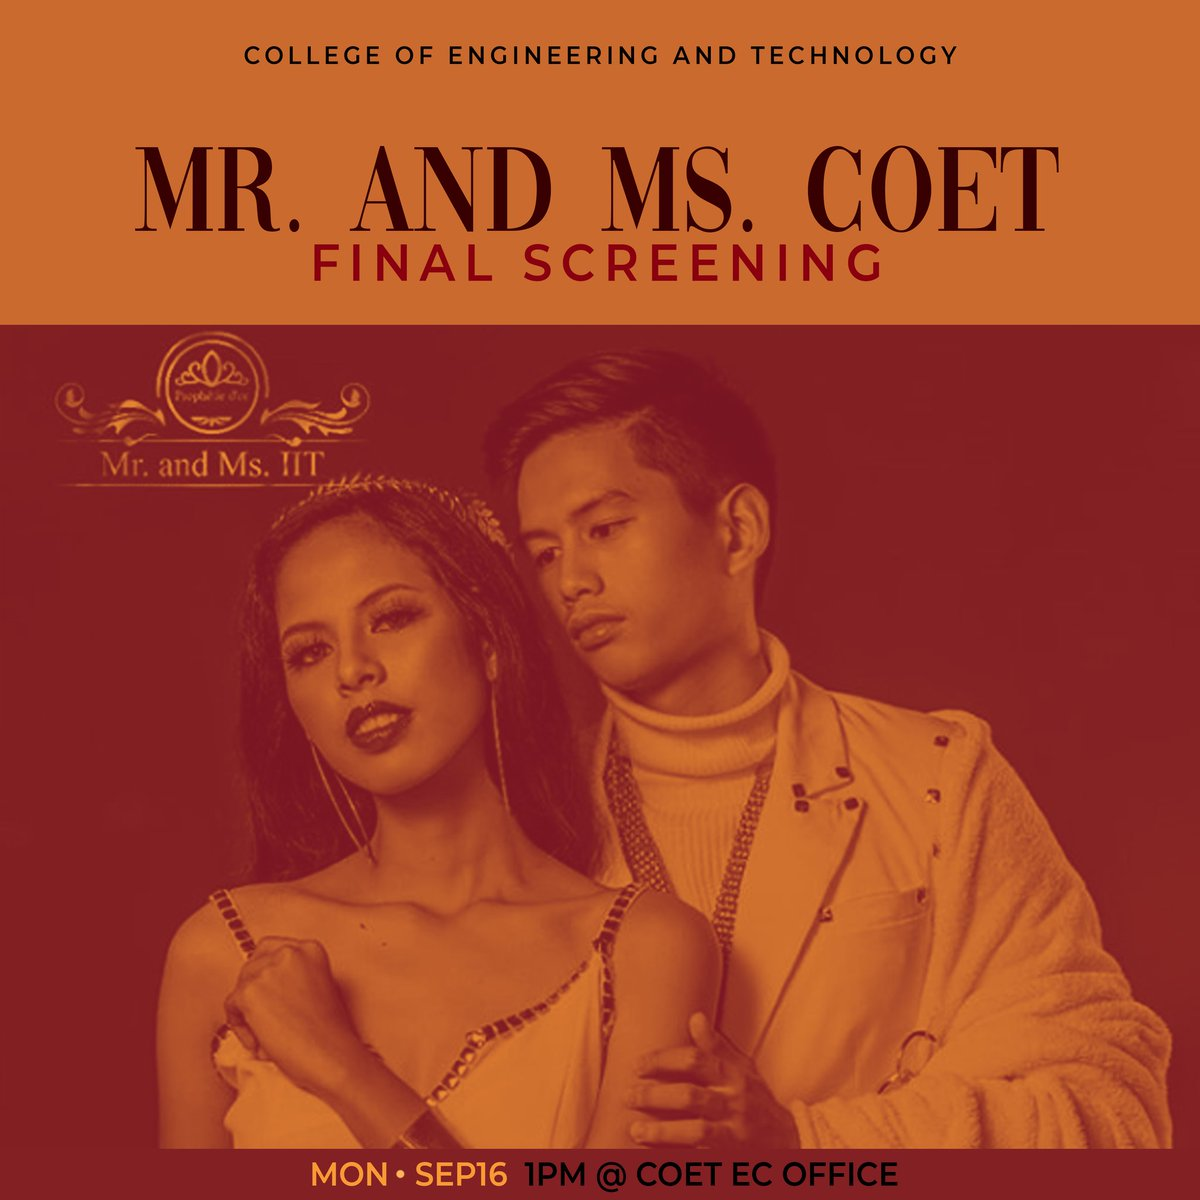 I know you got beauty and brain, COET ka, dili? We are all beautiful and smart in the college of engineering and technology. Be the pride of our college as you become our MR and MS COET 2019! This is the final screening of Mr and Ms COET. Tomorrow, Sept 16, 1PM at COET EC! <br>http://pic.twitter.com/44YzSl3Hq2